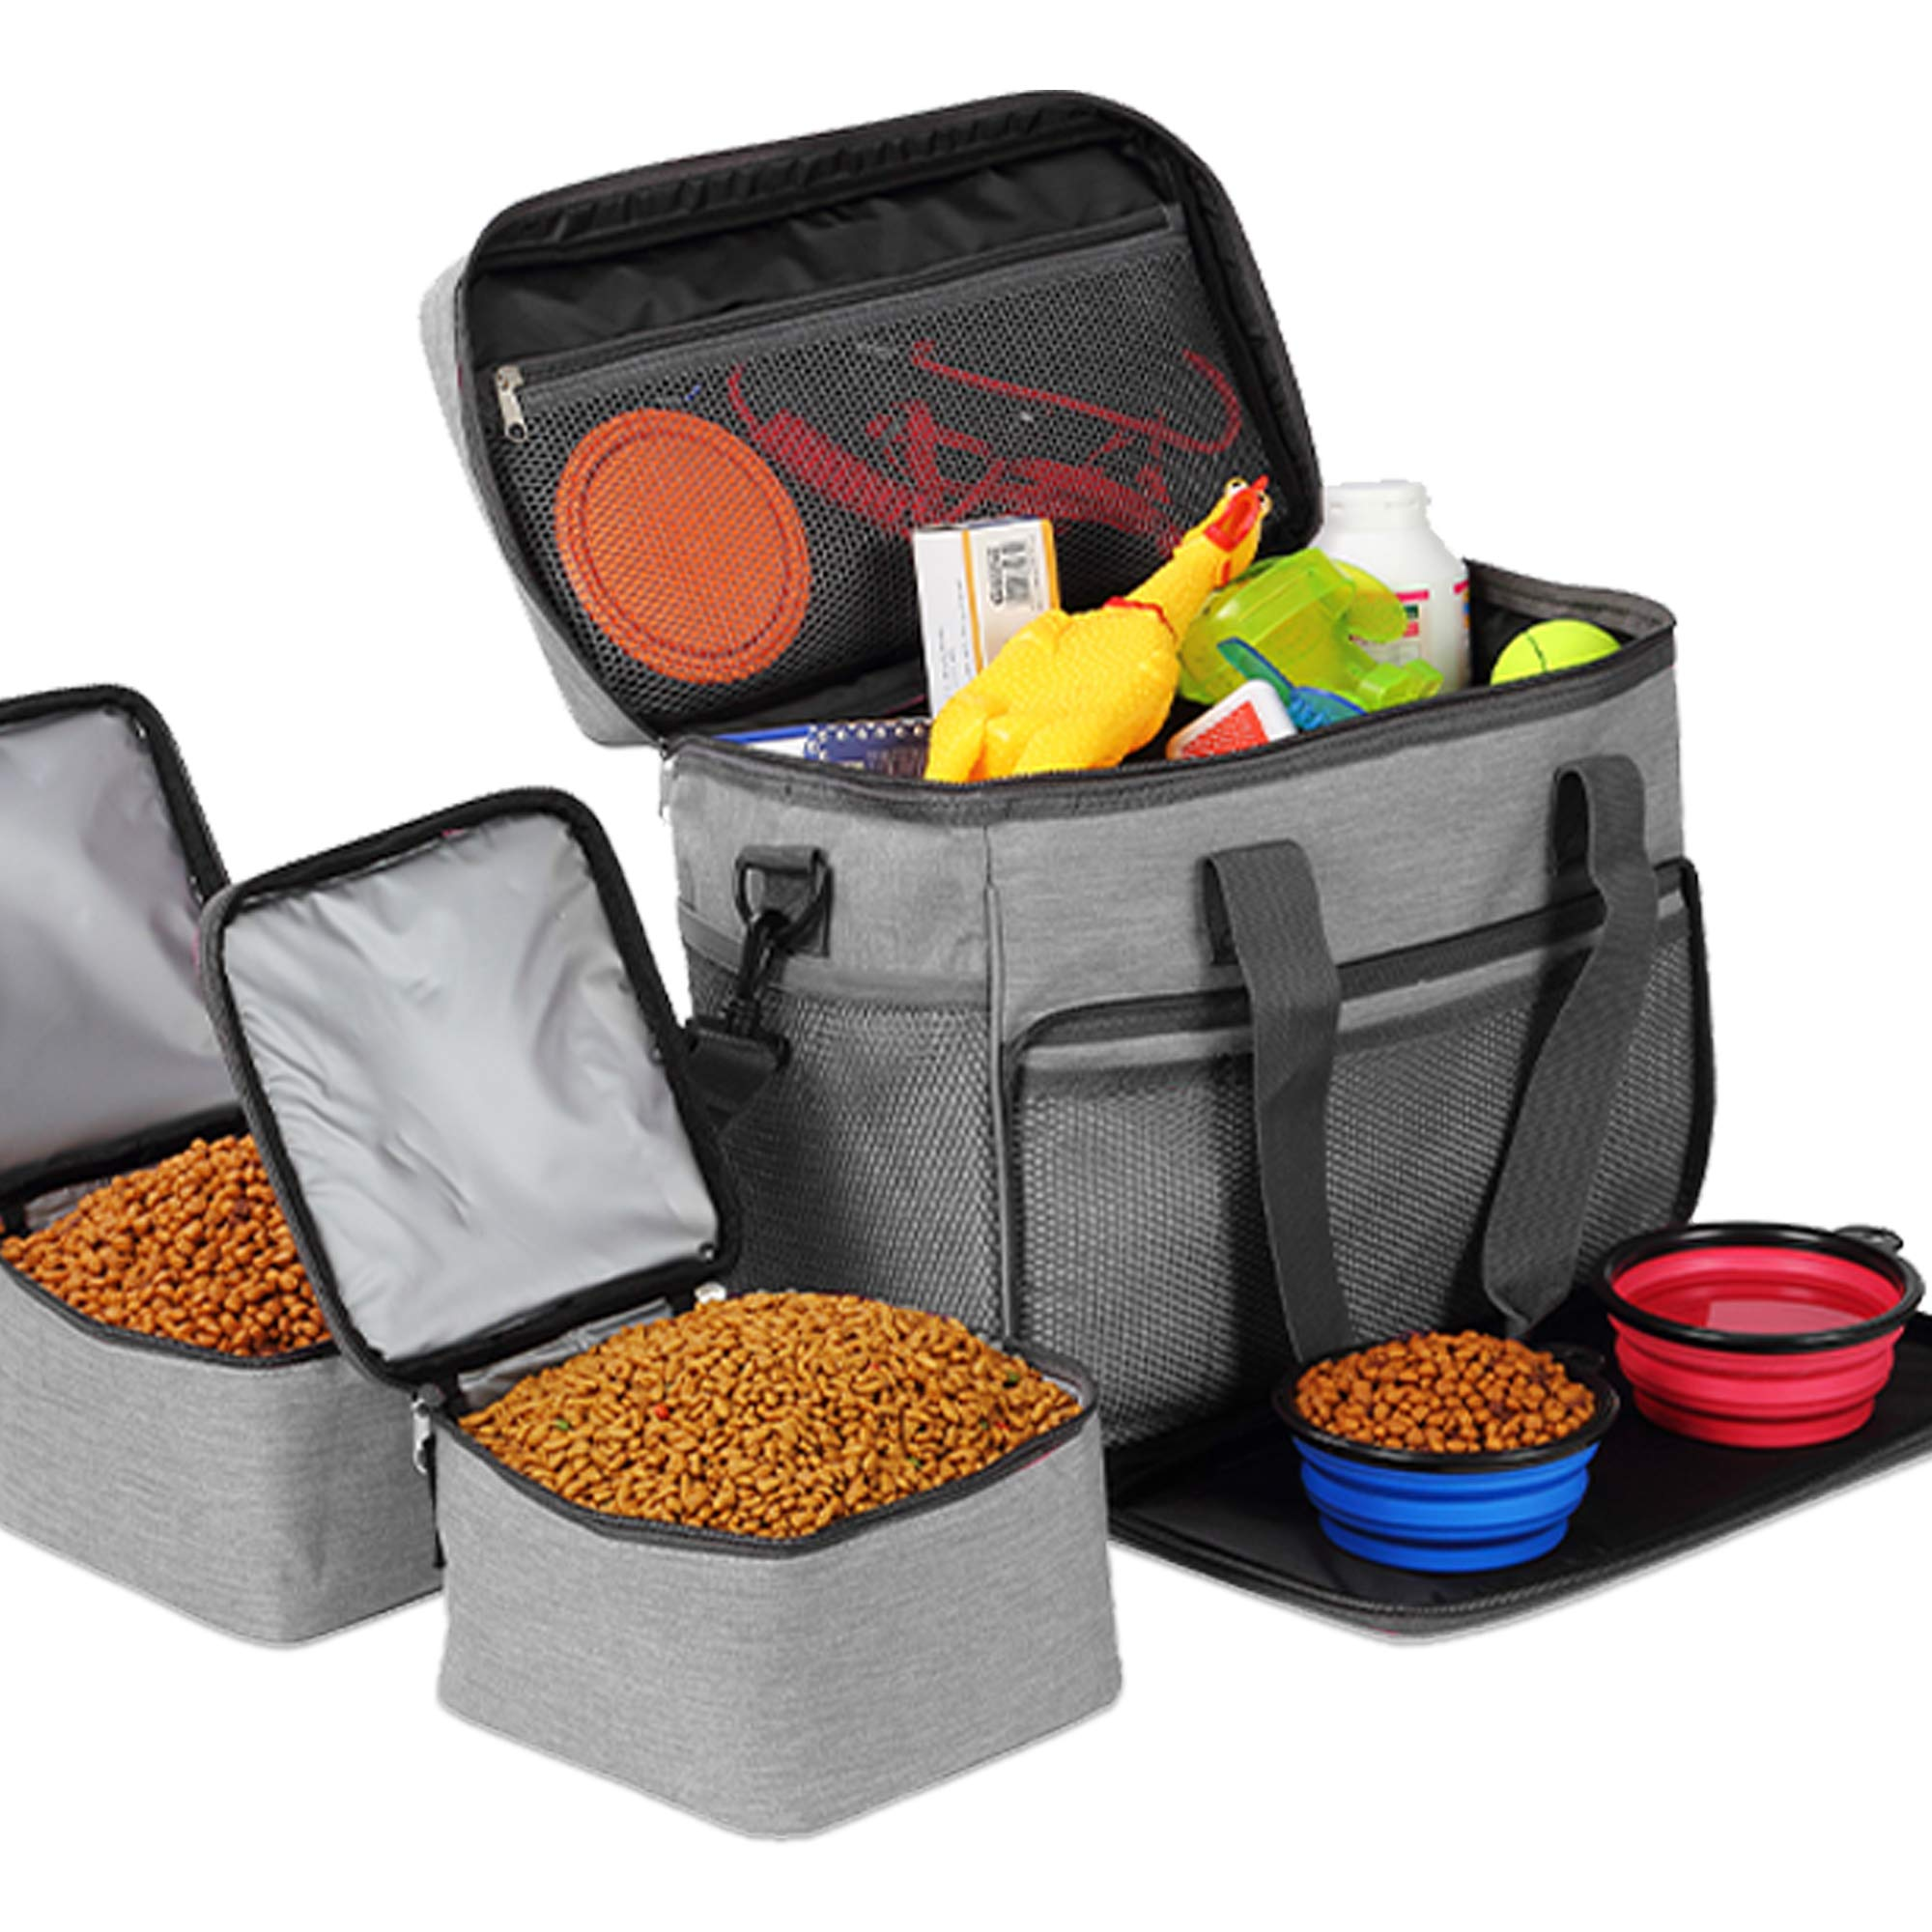 KOPEKS Cat and Dog Travel Bag - Includes 2 Food Carriers, 2 Bowls and Place mat - Airline Approved - Heather Grey by KOPEKS